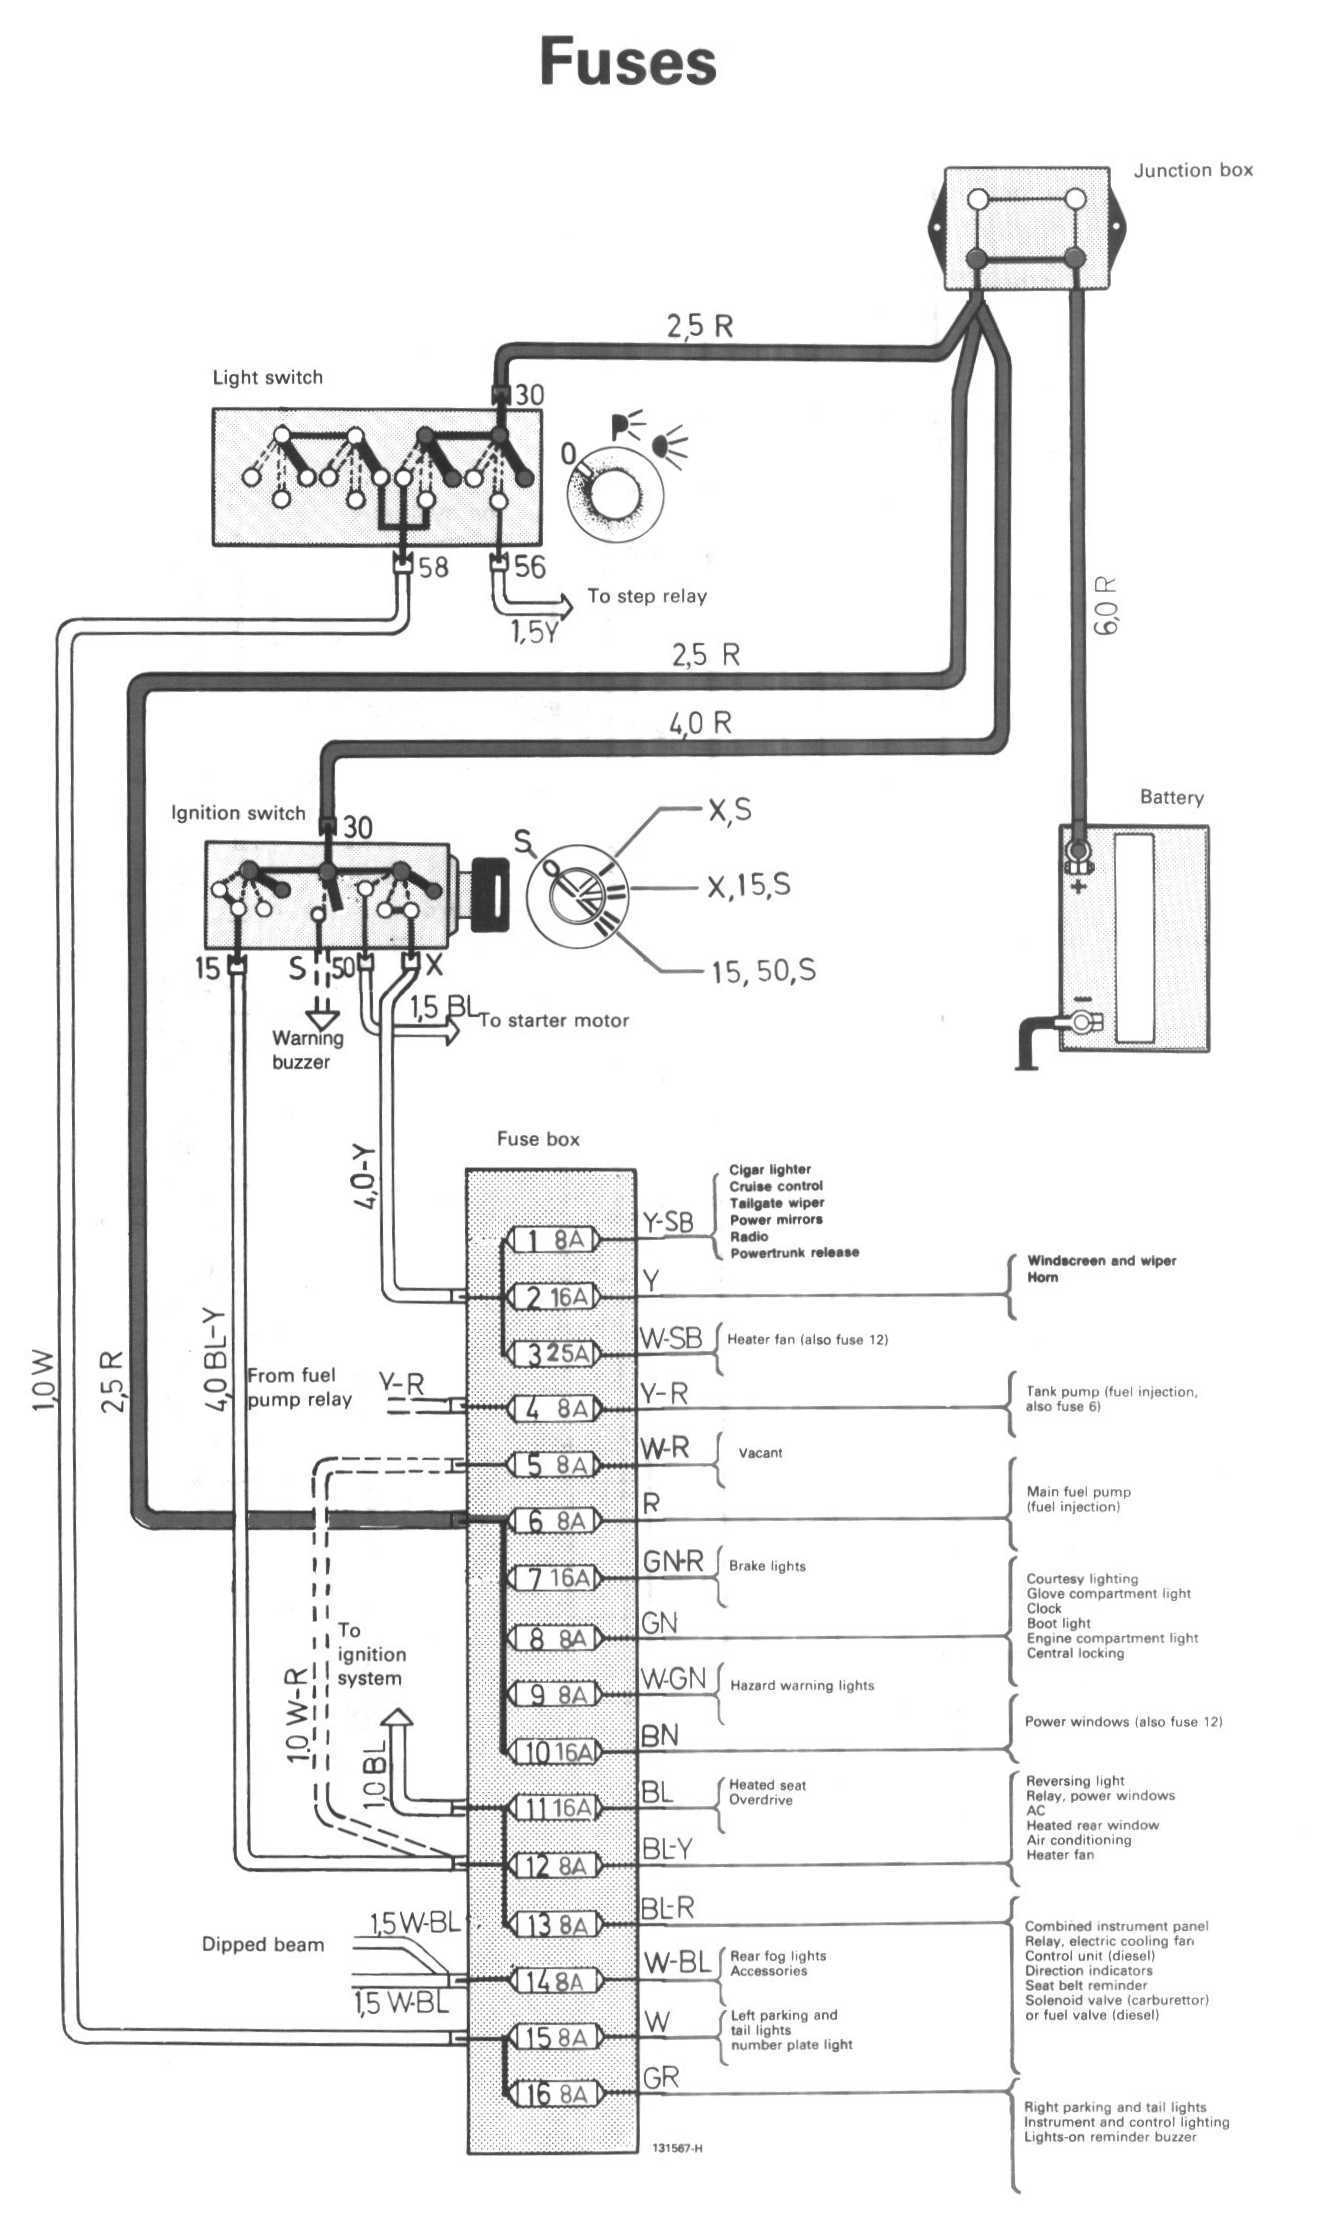 I Am Missing The Fuse Diagram For A 1985 240 Volvo Anywhere I Can 92 Volvo  240 Fuse Box Volvo 240 Fuse Diagram